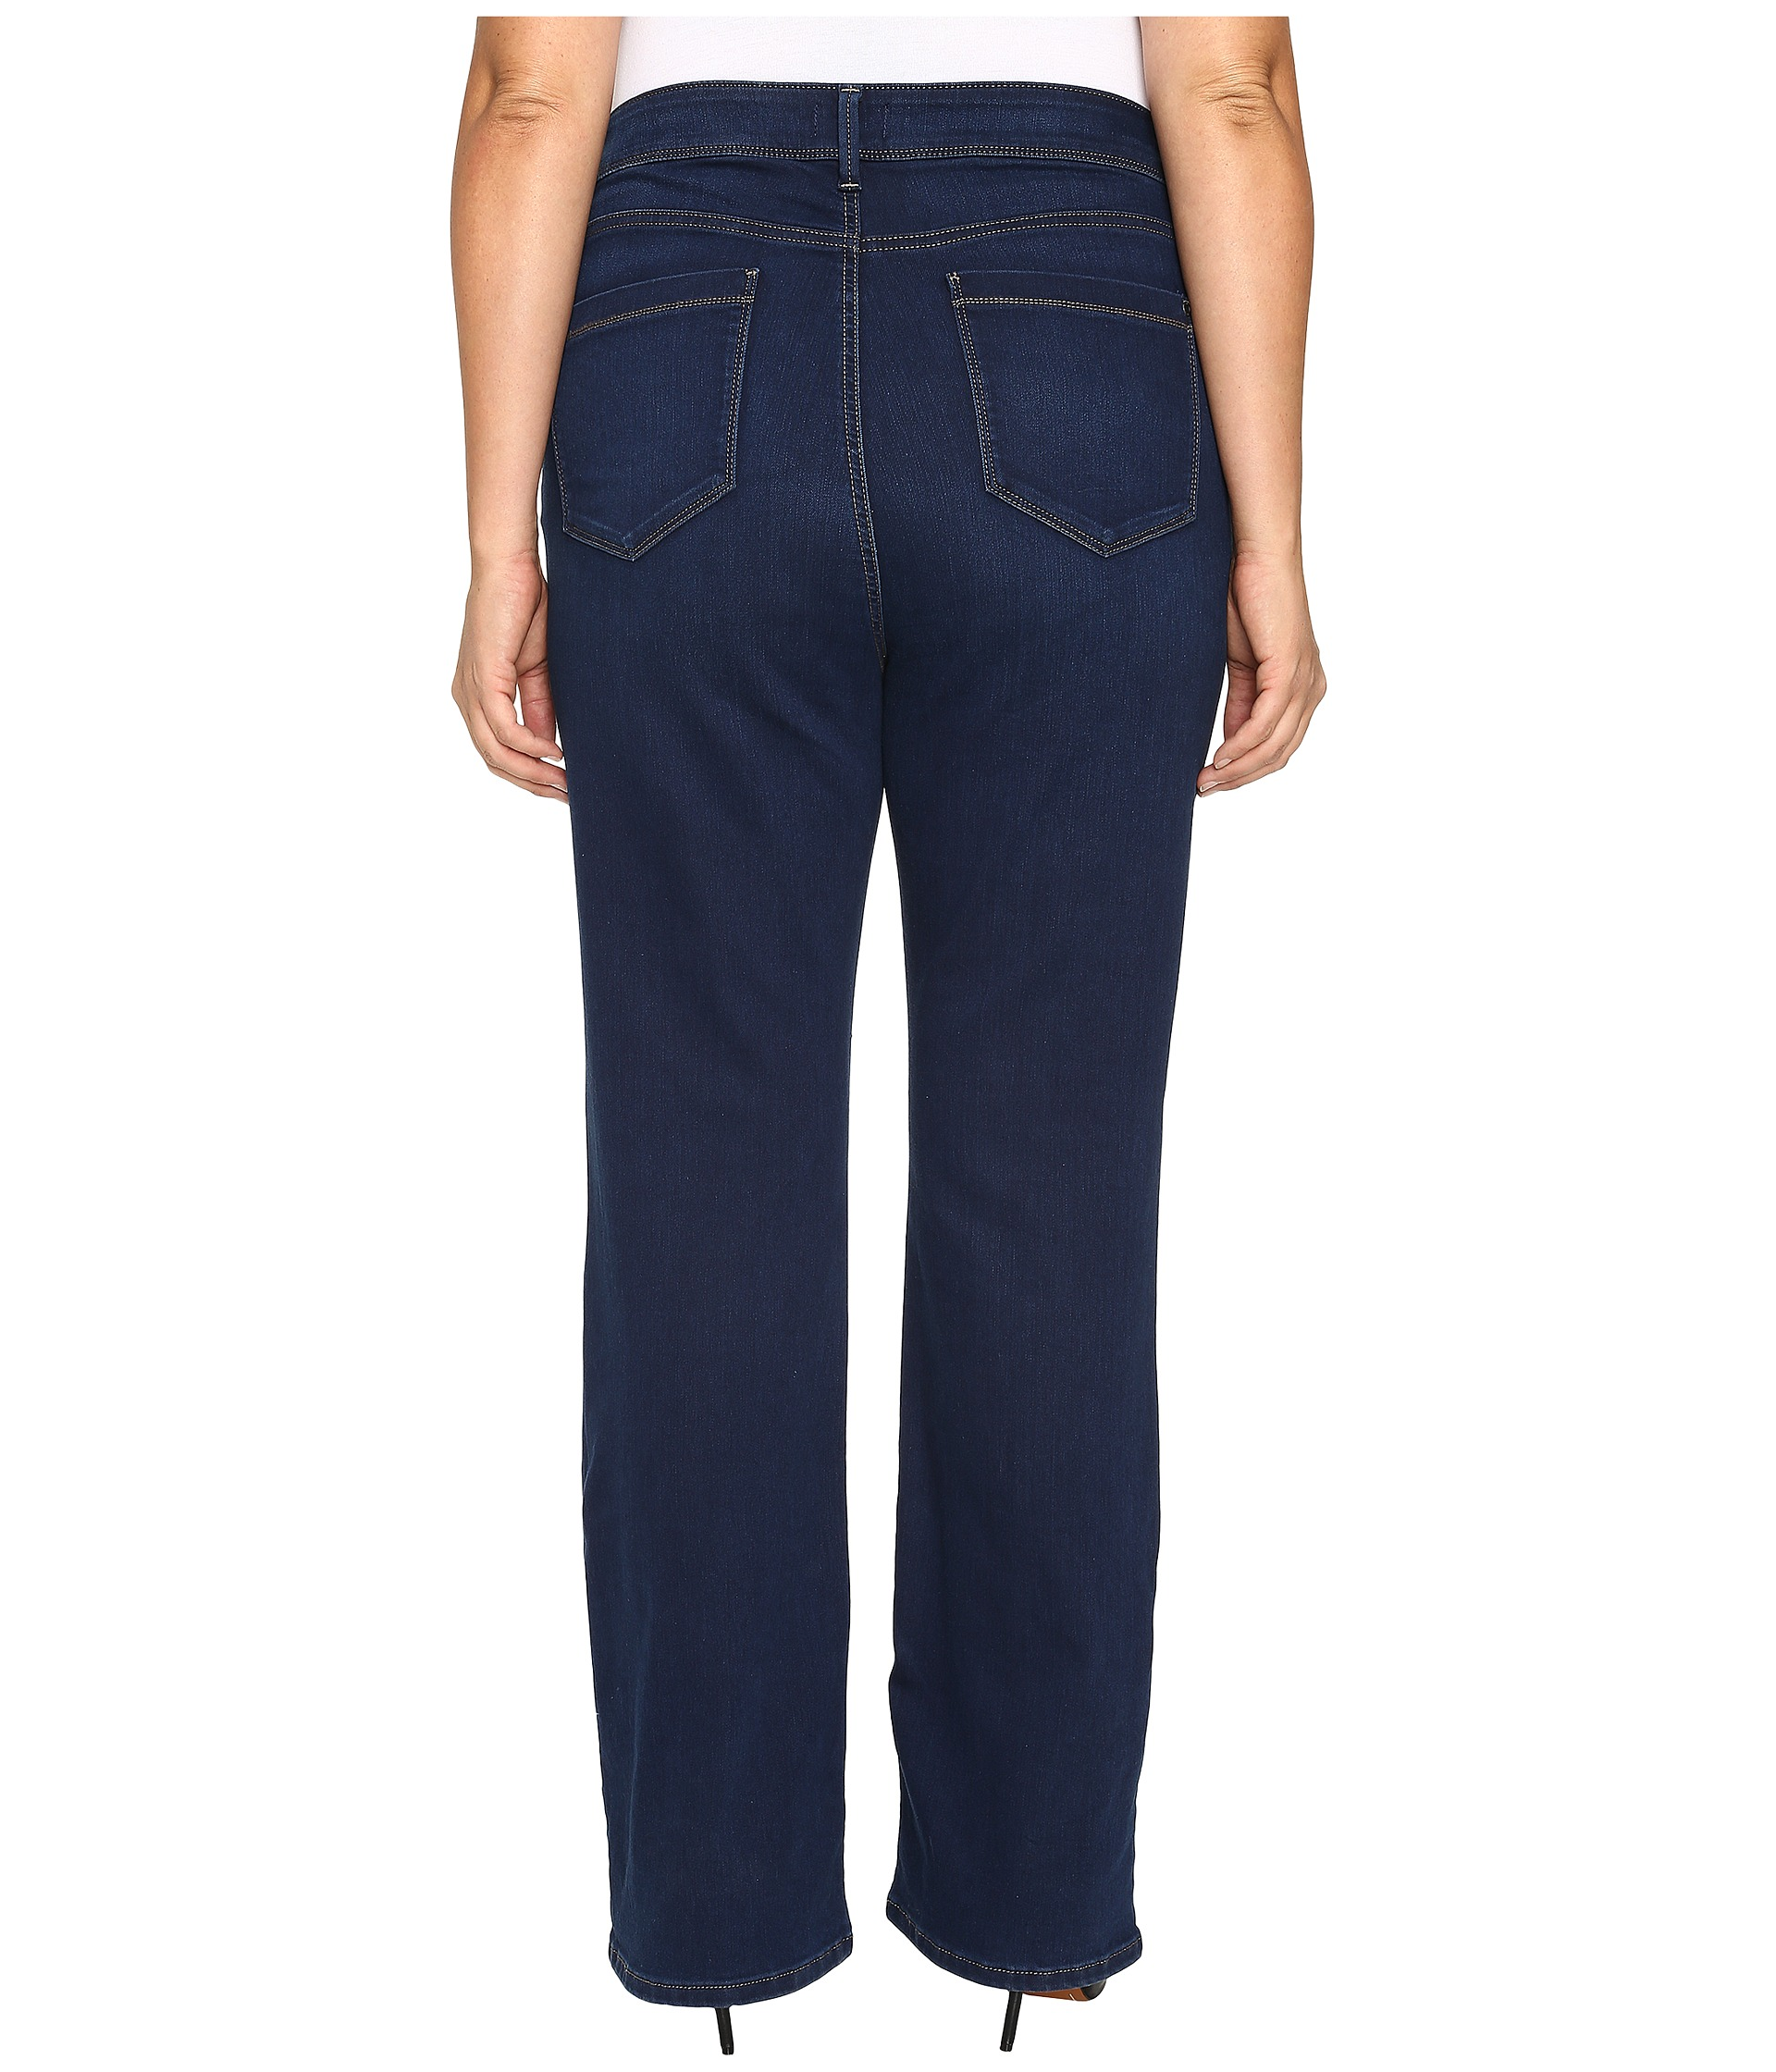 Find a pair of pants or jeans that fit you well and measure the width of the bottom hem of one leg, doubling measurement. LENGTH MEASUREMENT (FOR DRESSES & SKIRTS) Find a dress that fits you well and measure from the highest point of the shoulder seam to the bottom hem.